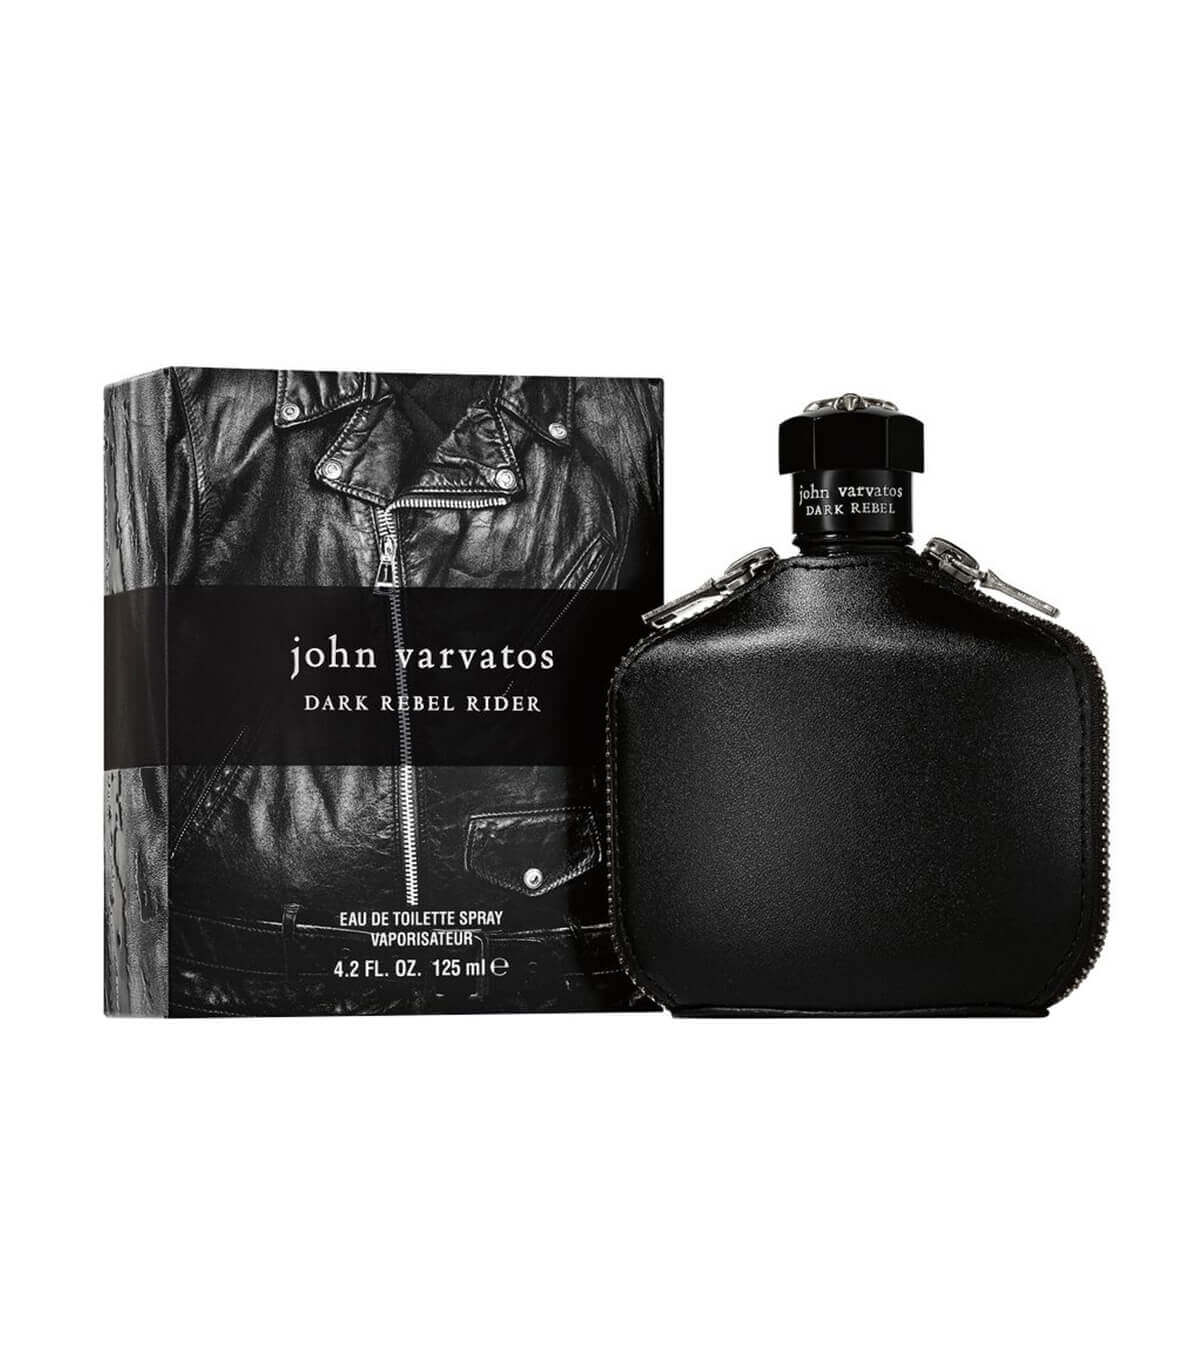 Johnv Drk Rbel Rider EDT 125Ml